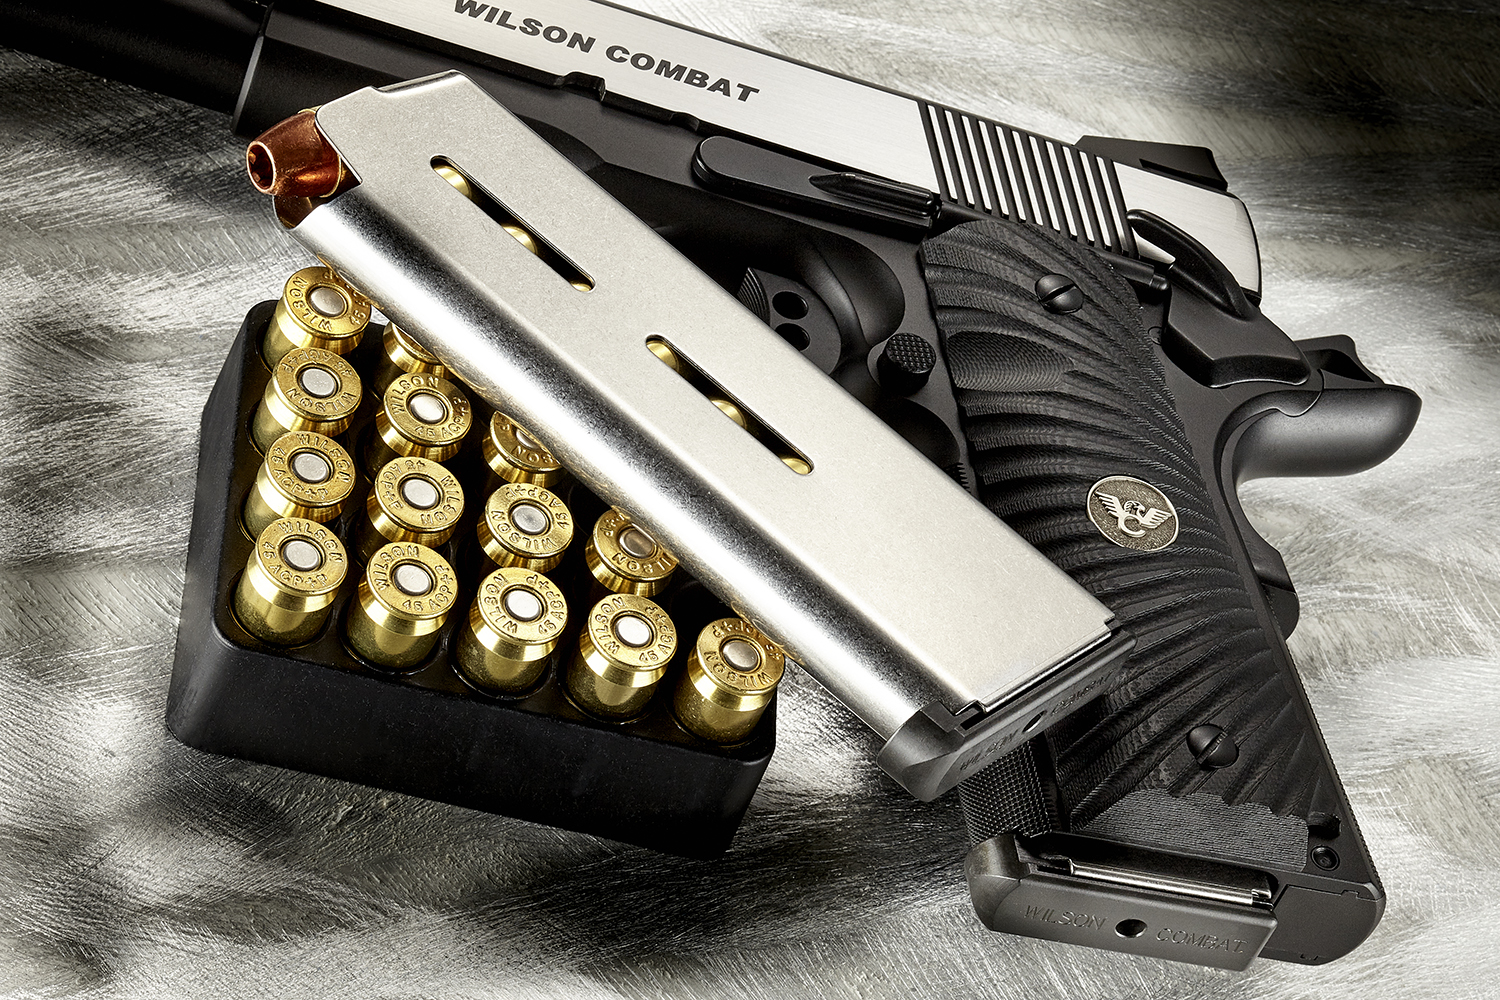 1911 Magazine | 7 Round .45 ACP HD/+P | Full-Size-https ...